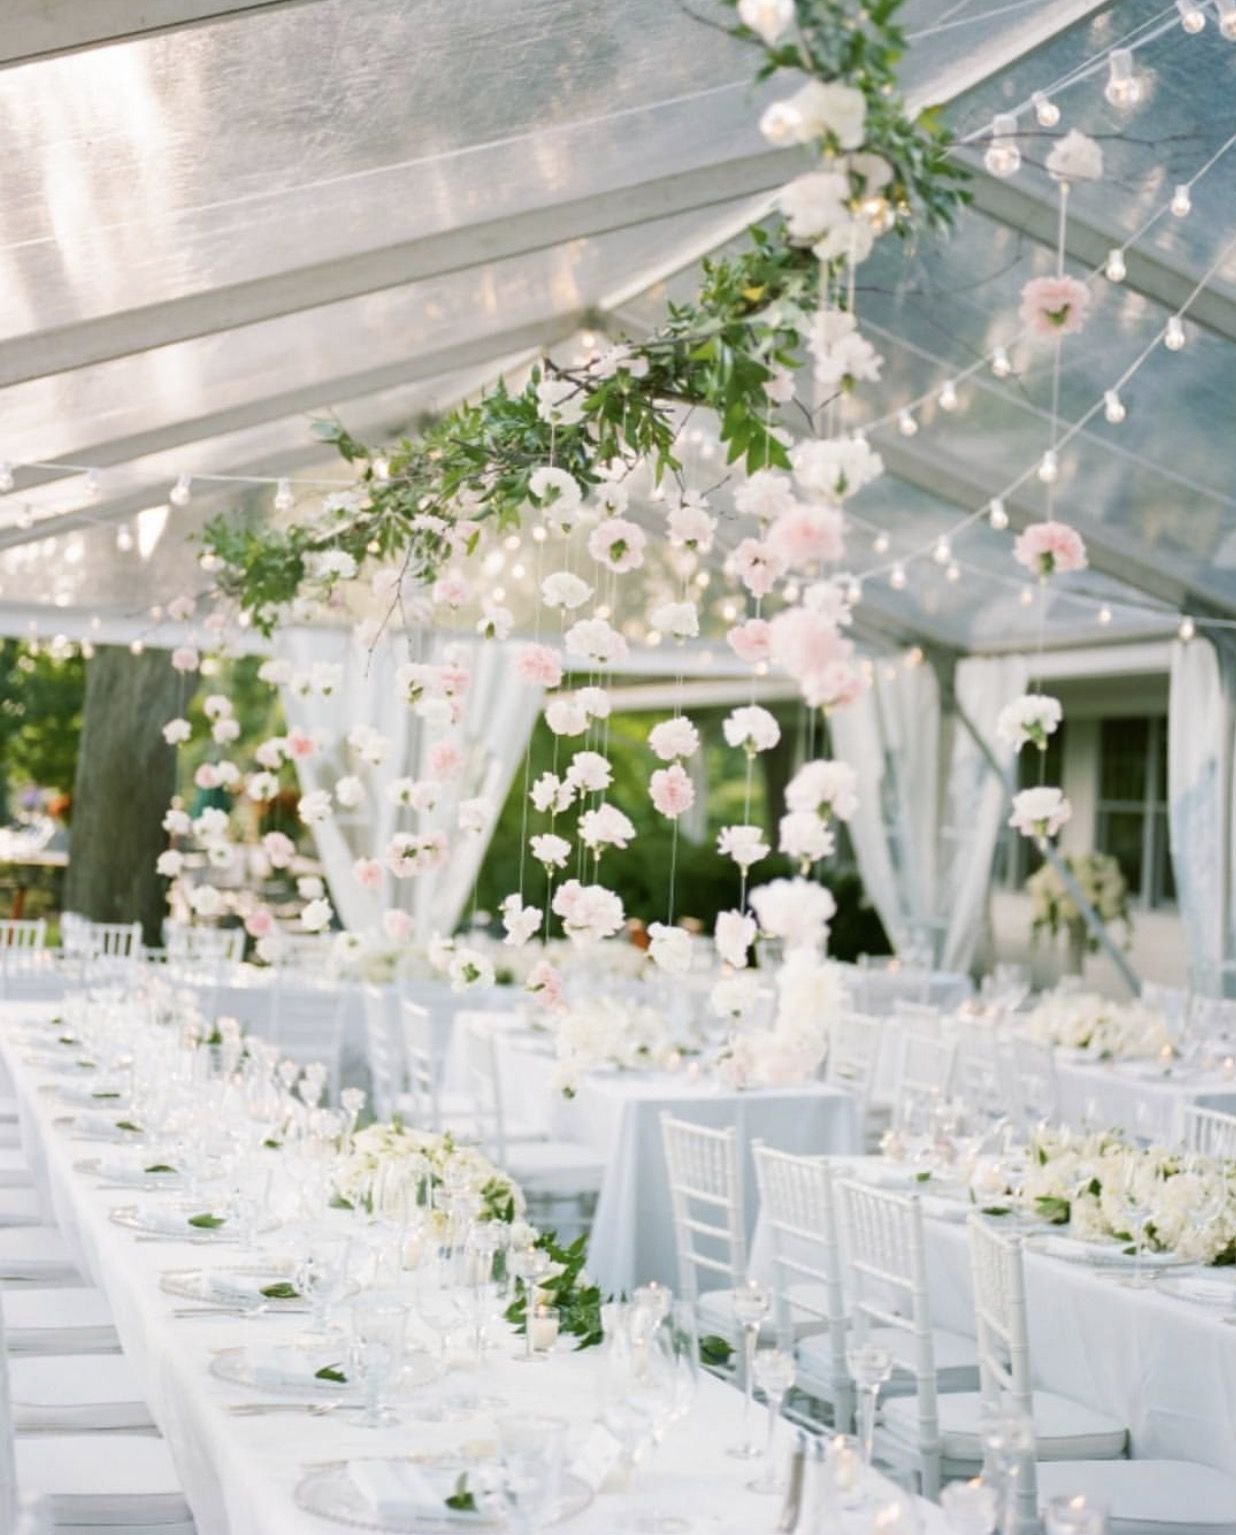 Pin by Tatyana Ches on Wedding | Pinterest | Wedding